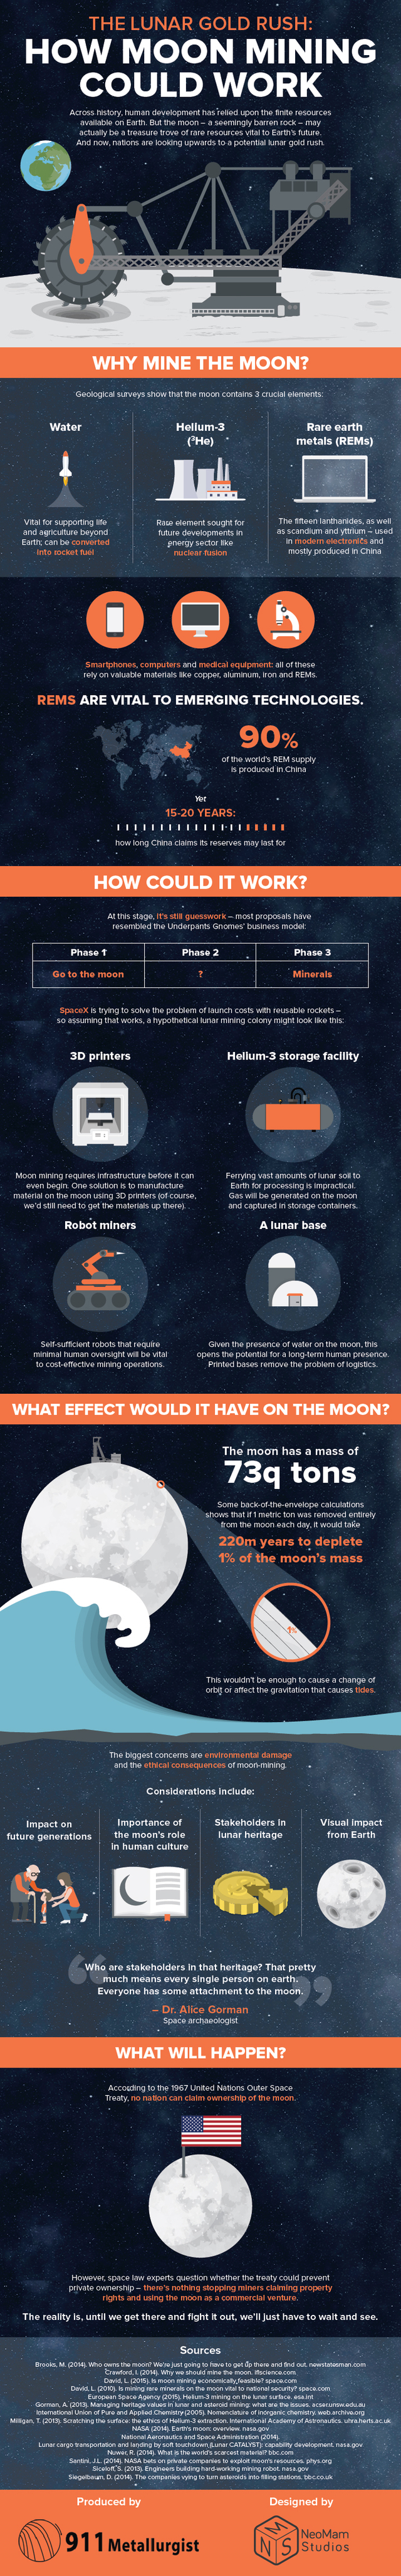 How Moon Mining Could Work (Infographic)